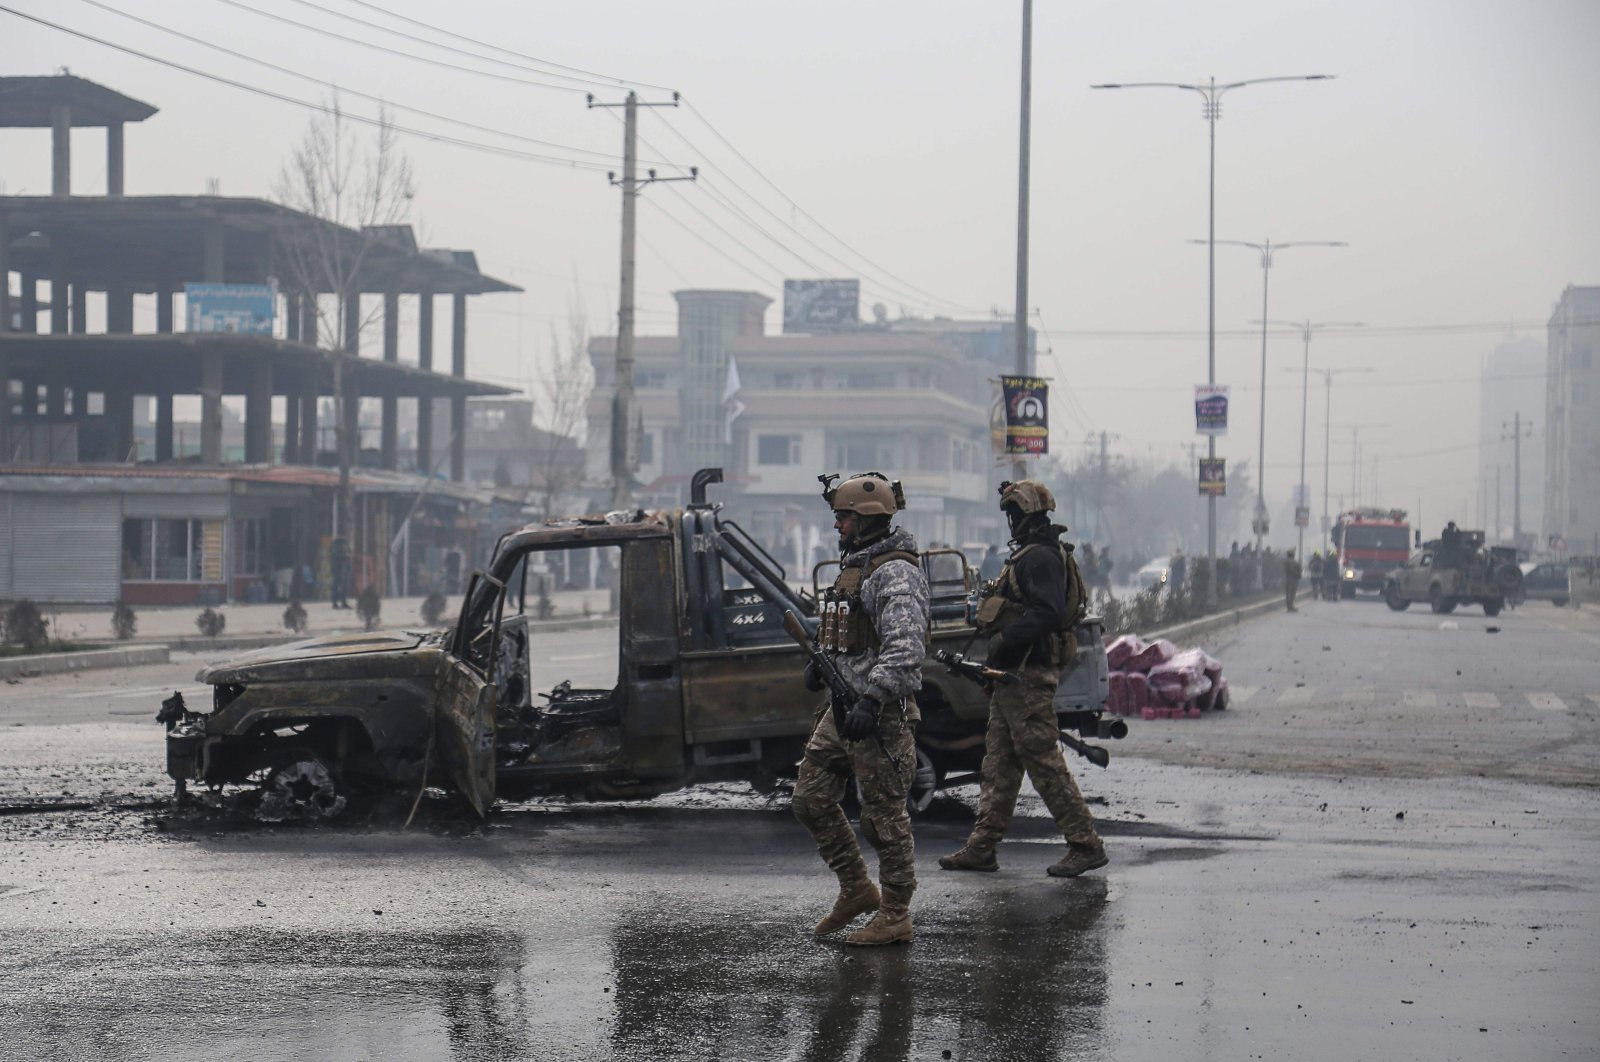 Members of Afghan security forces stand at the site of an attack in Kabul, Dec. 20, 2020. (AFP Photo)